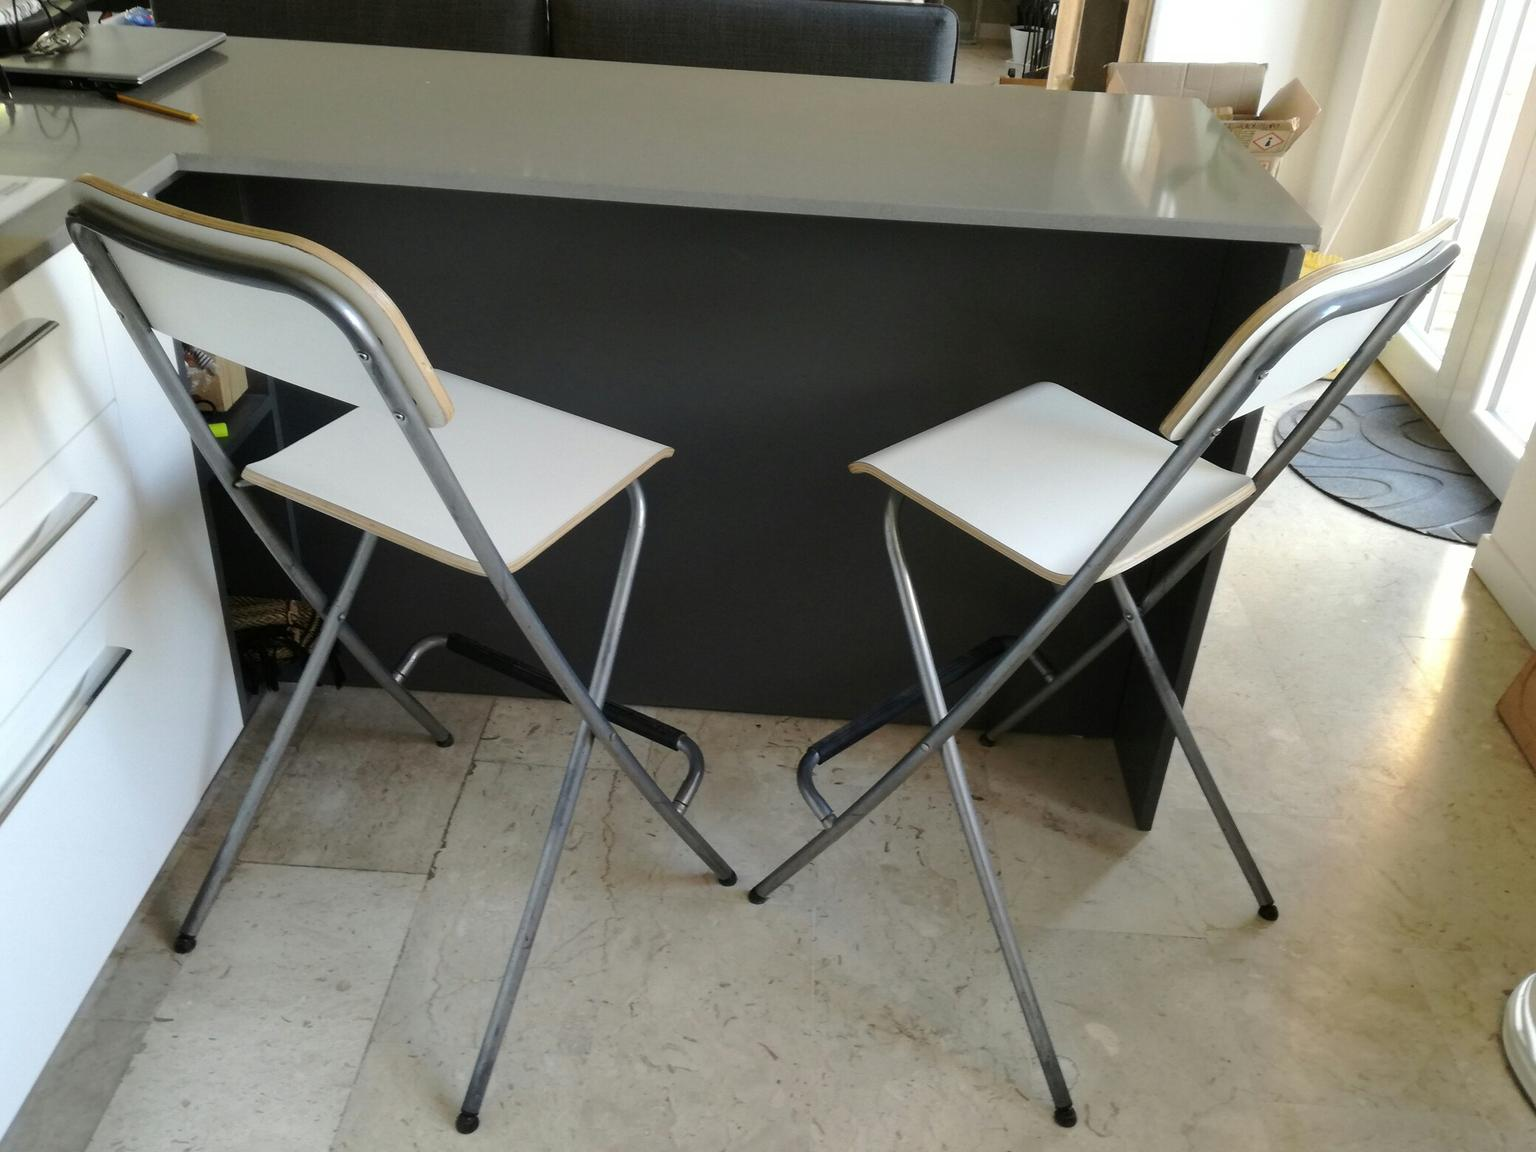 Sedie sgabello franklin ikea in 00124 roma for u20ac18 for sale shpock